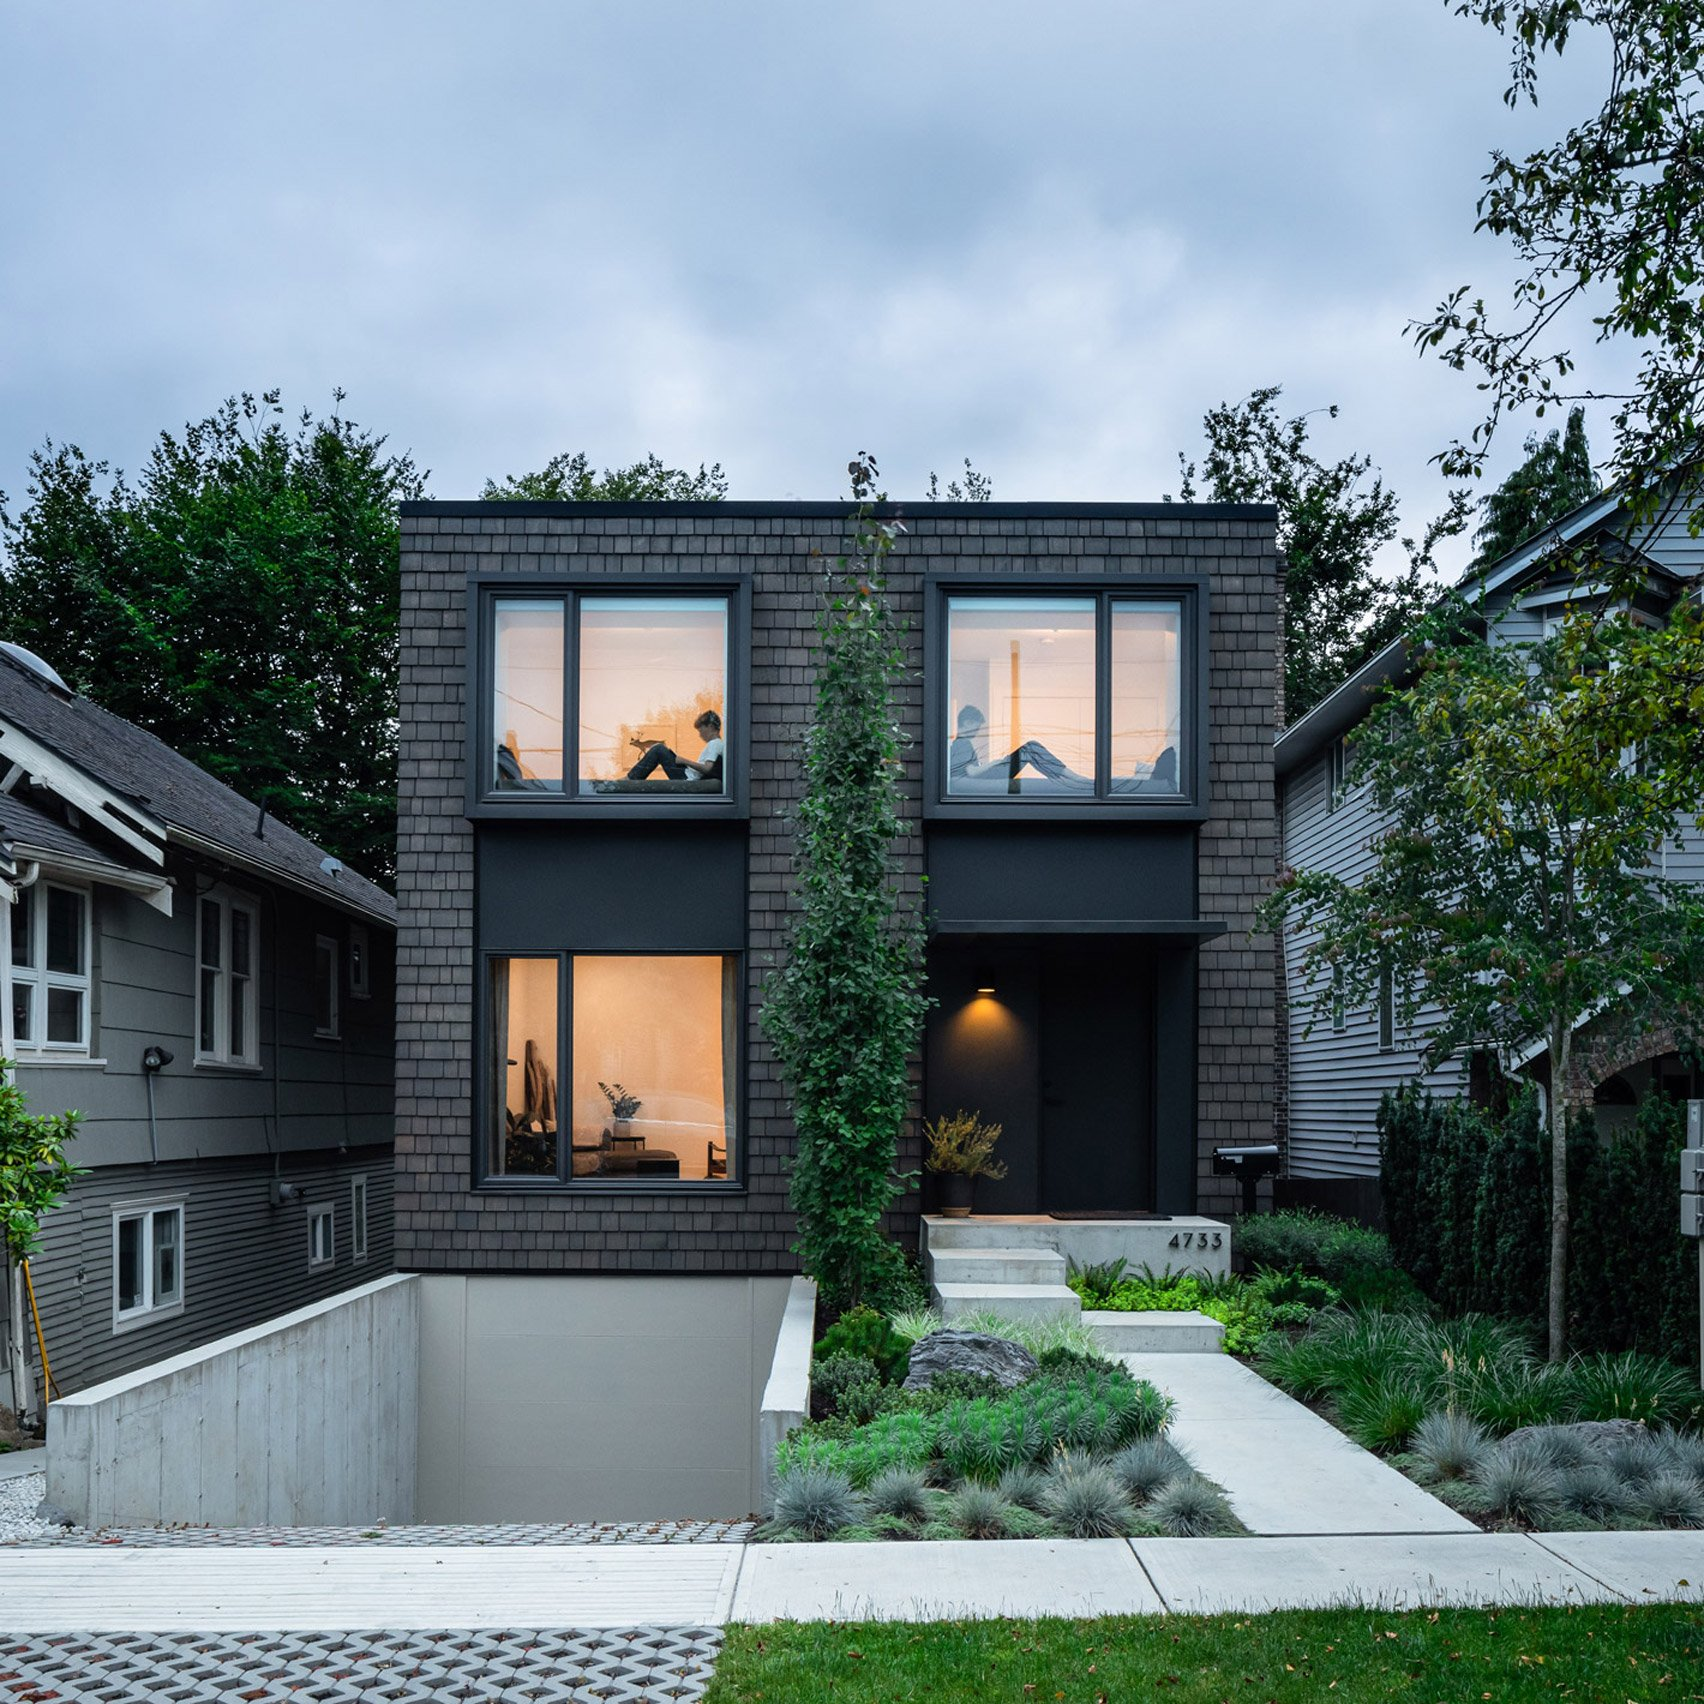 Vancouver Home By D Arcy Jones Architects Designed To Mesh With Neighbouring Buildings